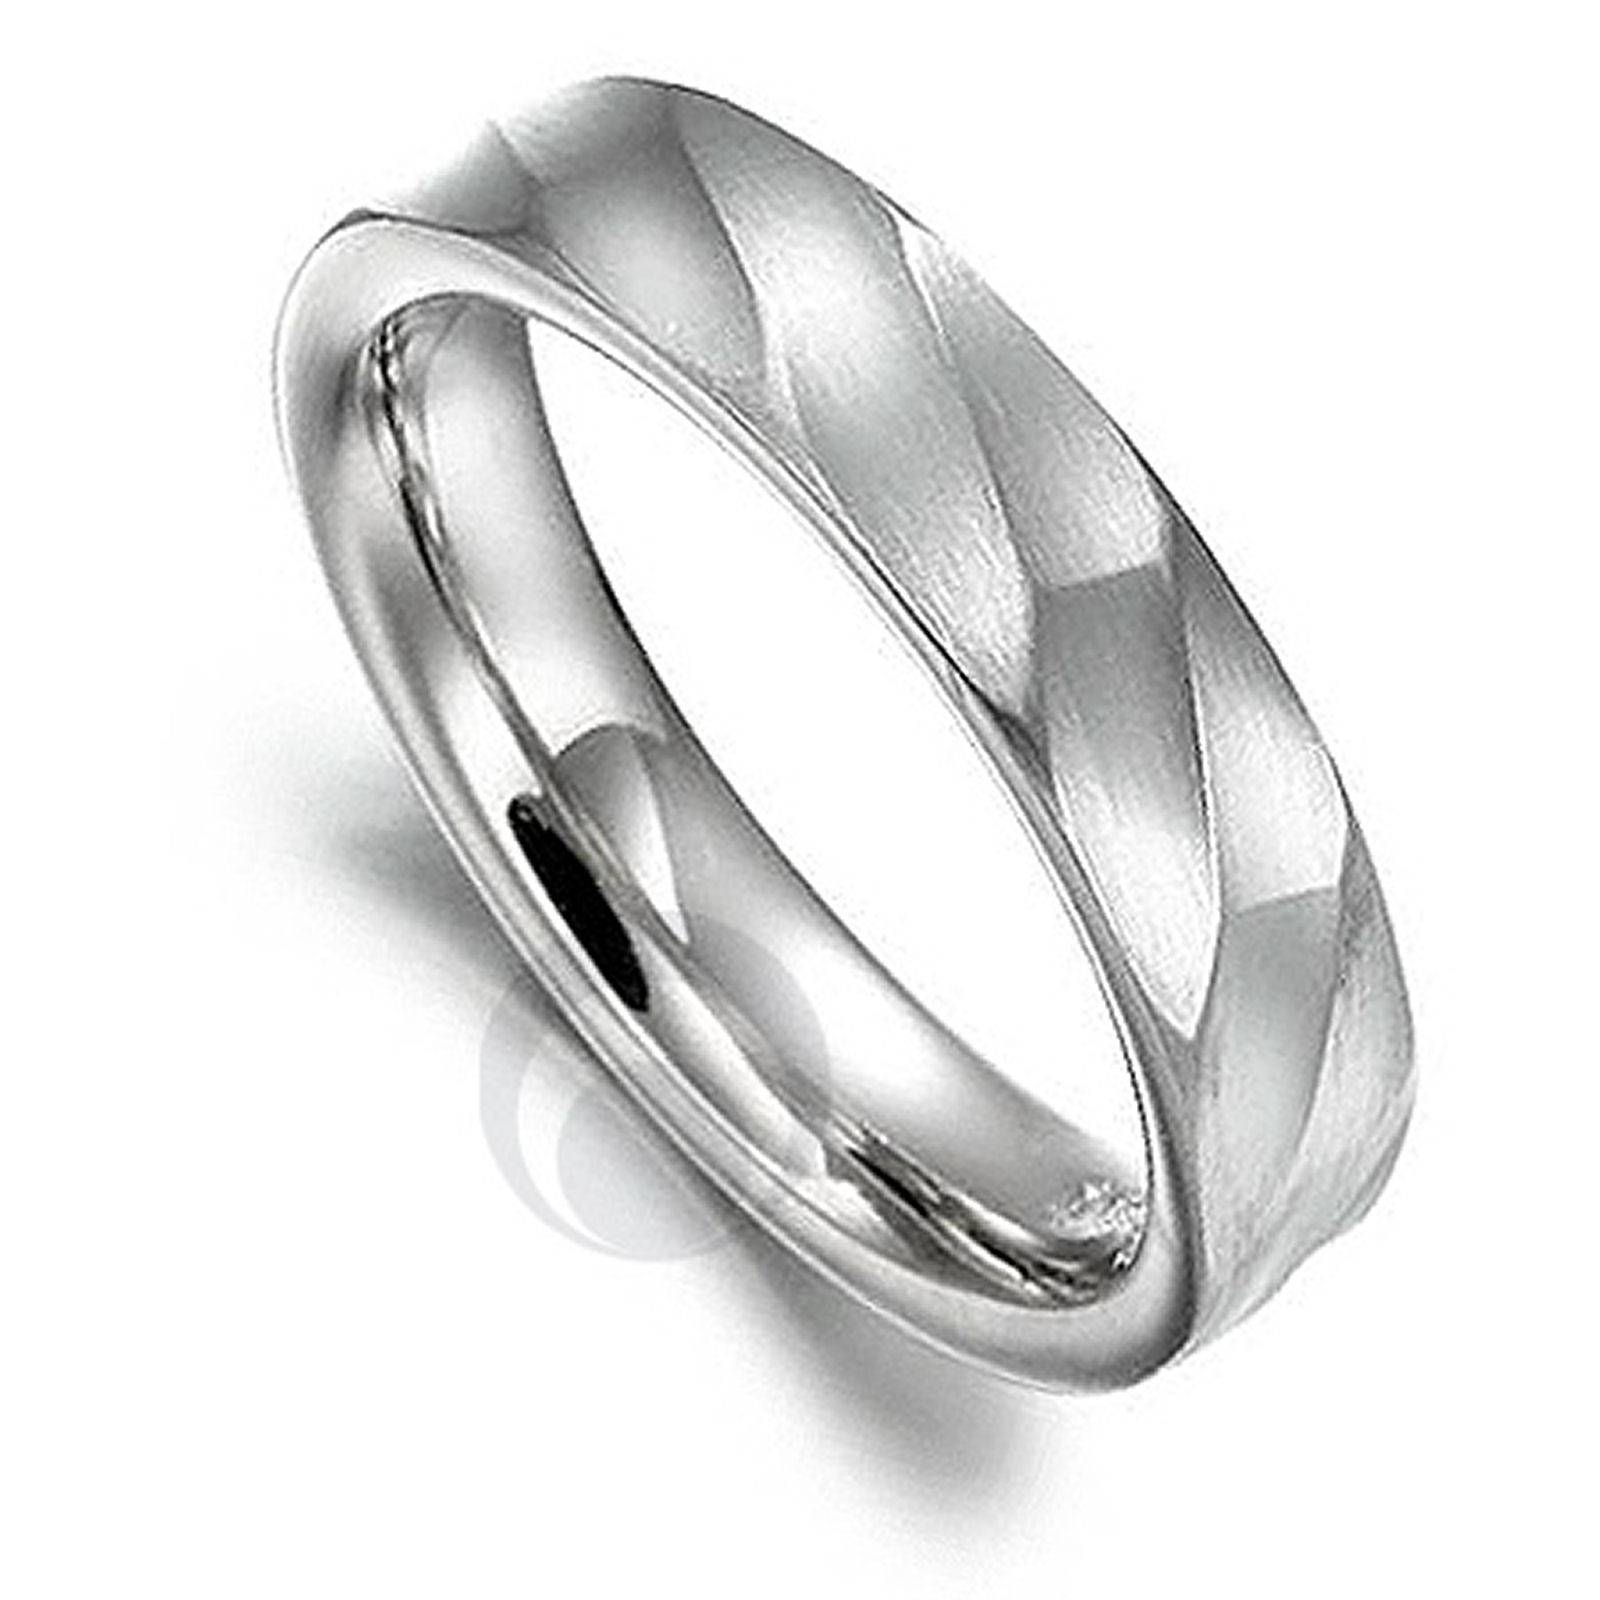 Gold And Silver Wedding Rings With Regard To Silver Wedding Rings For Men (View 8 of 15)